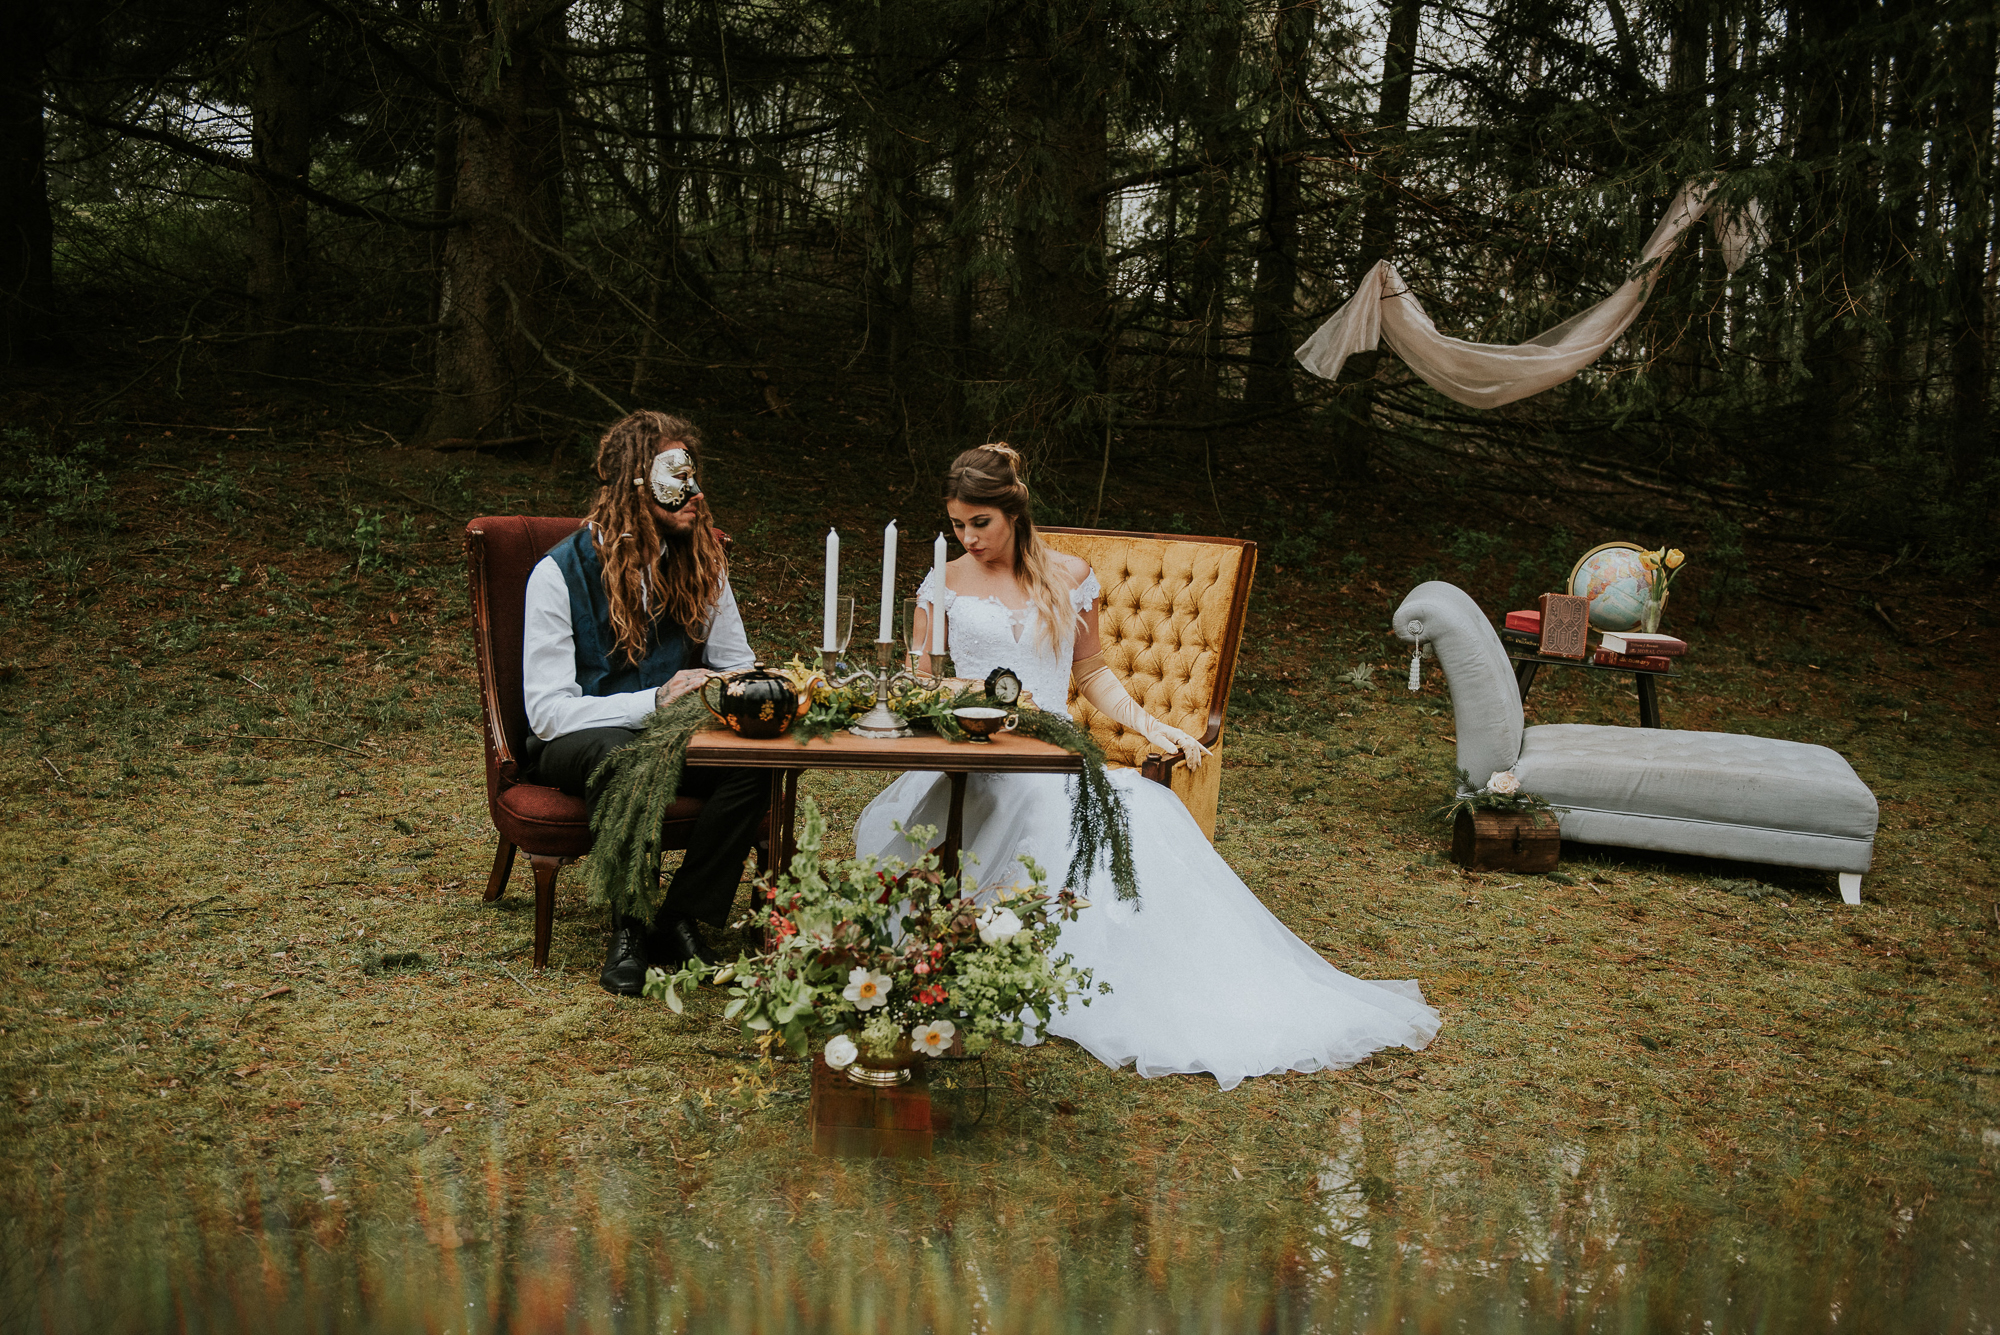 Beauty And The Beast Themed Wedding.Beauty And The Beast Inspired Bridal Shoot Miss Lyss